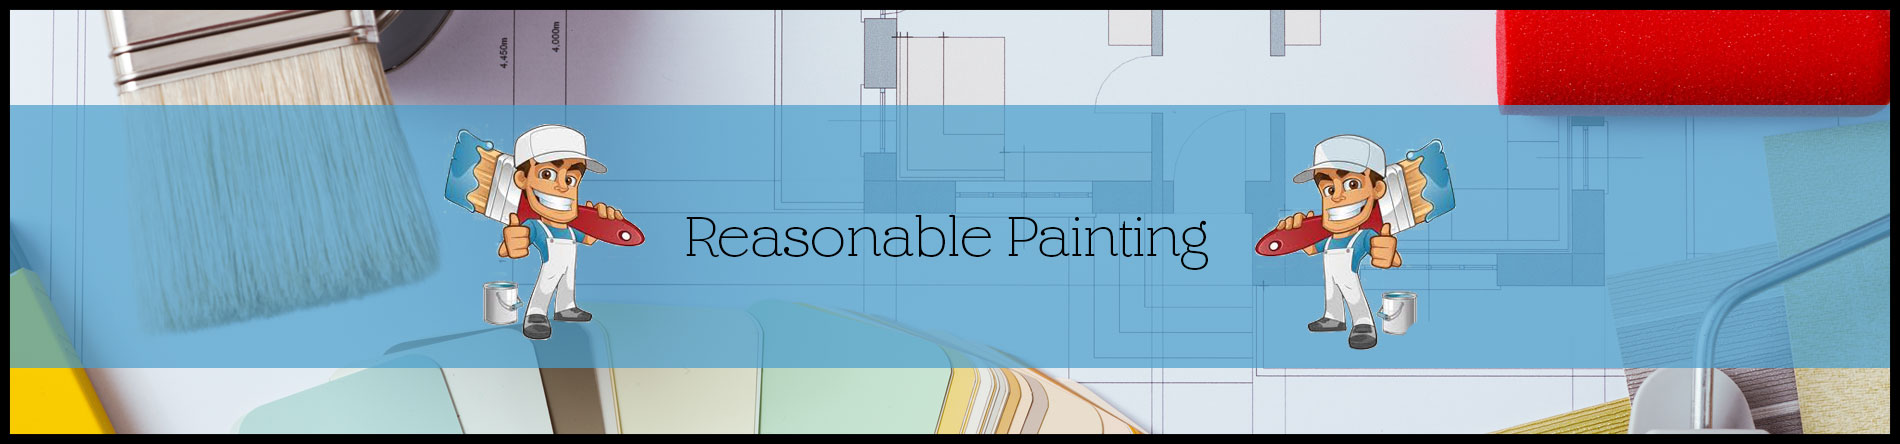 Reasonable Painting are Professional Painters in Caldwell, ID